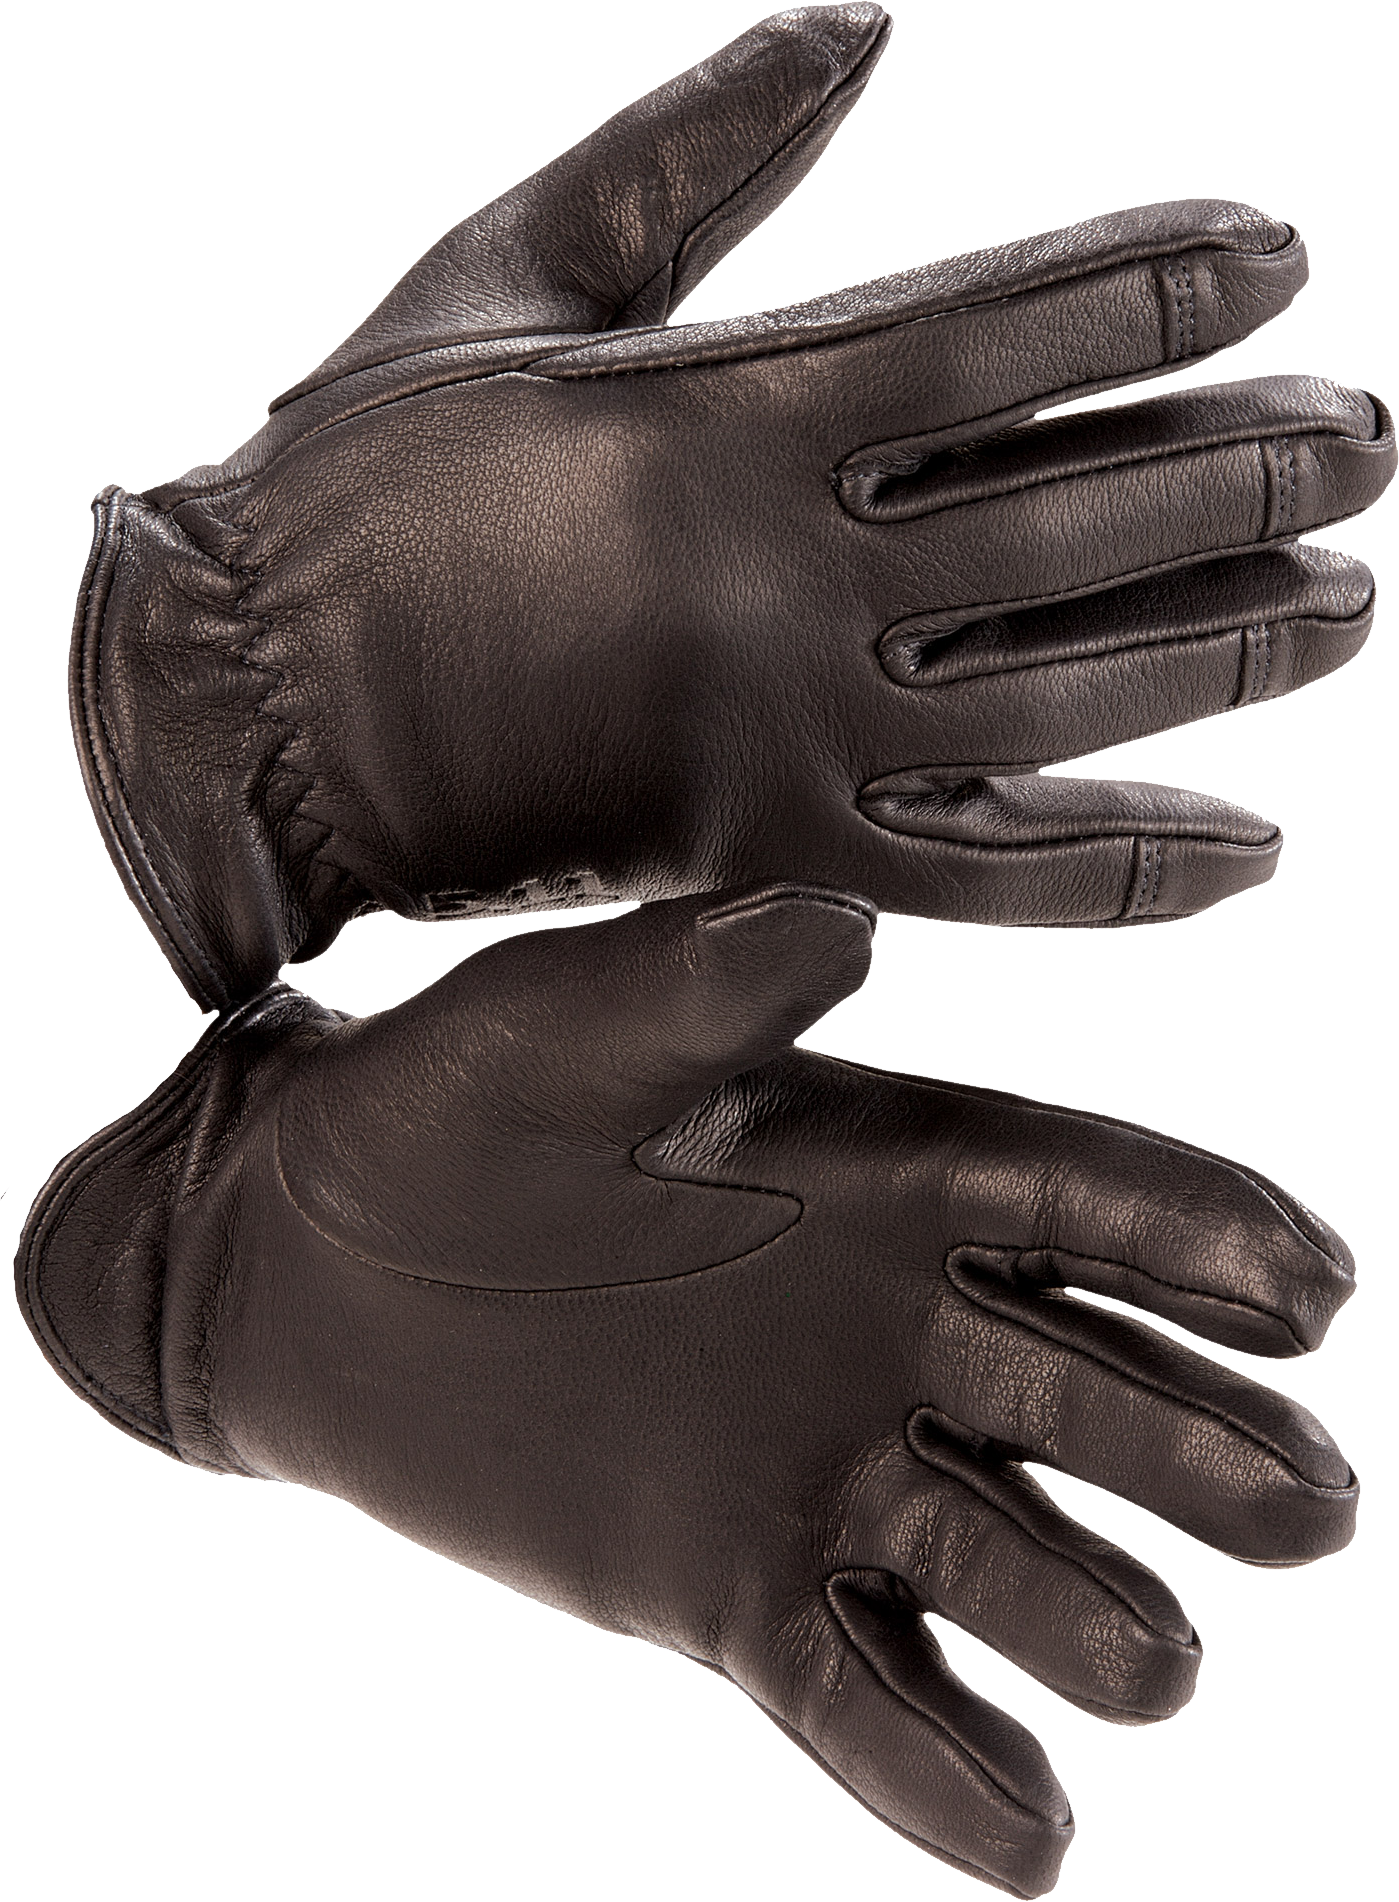 Leather Gloves PNG Image